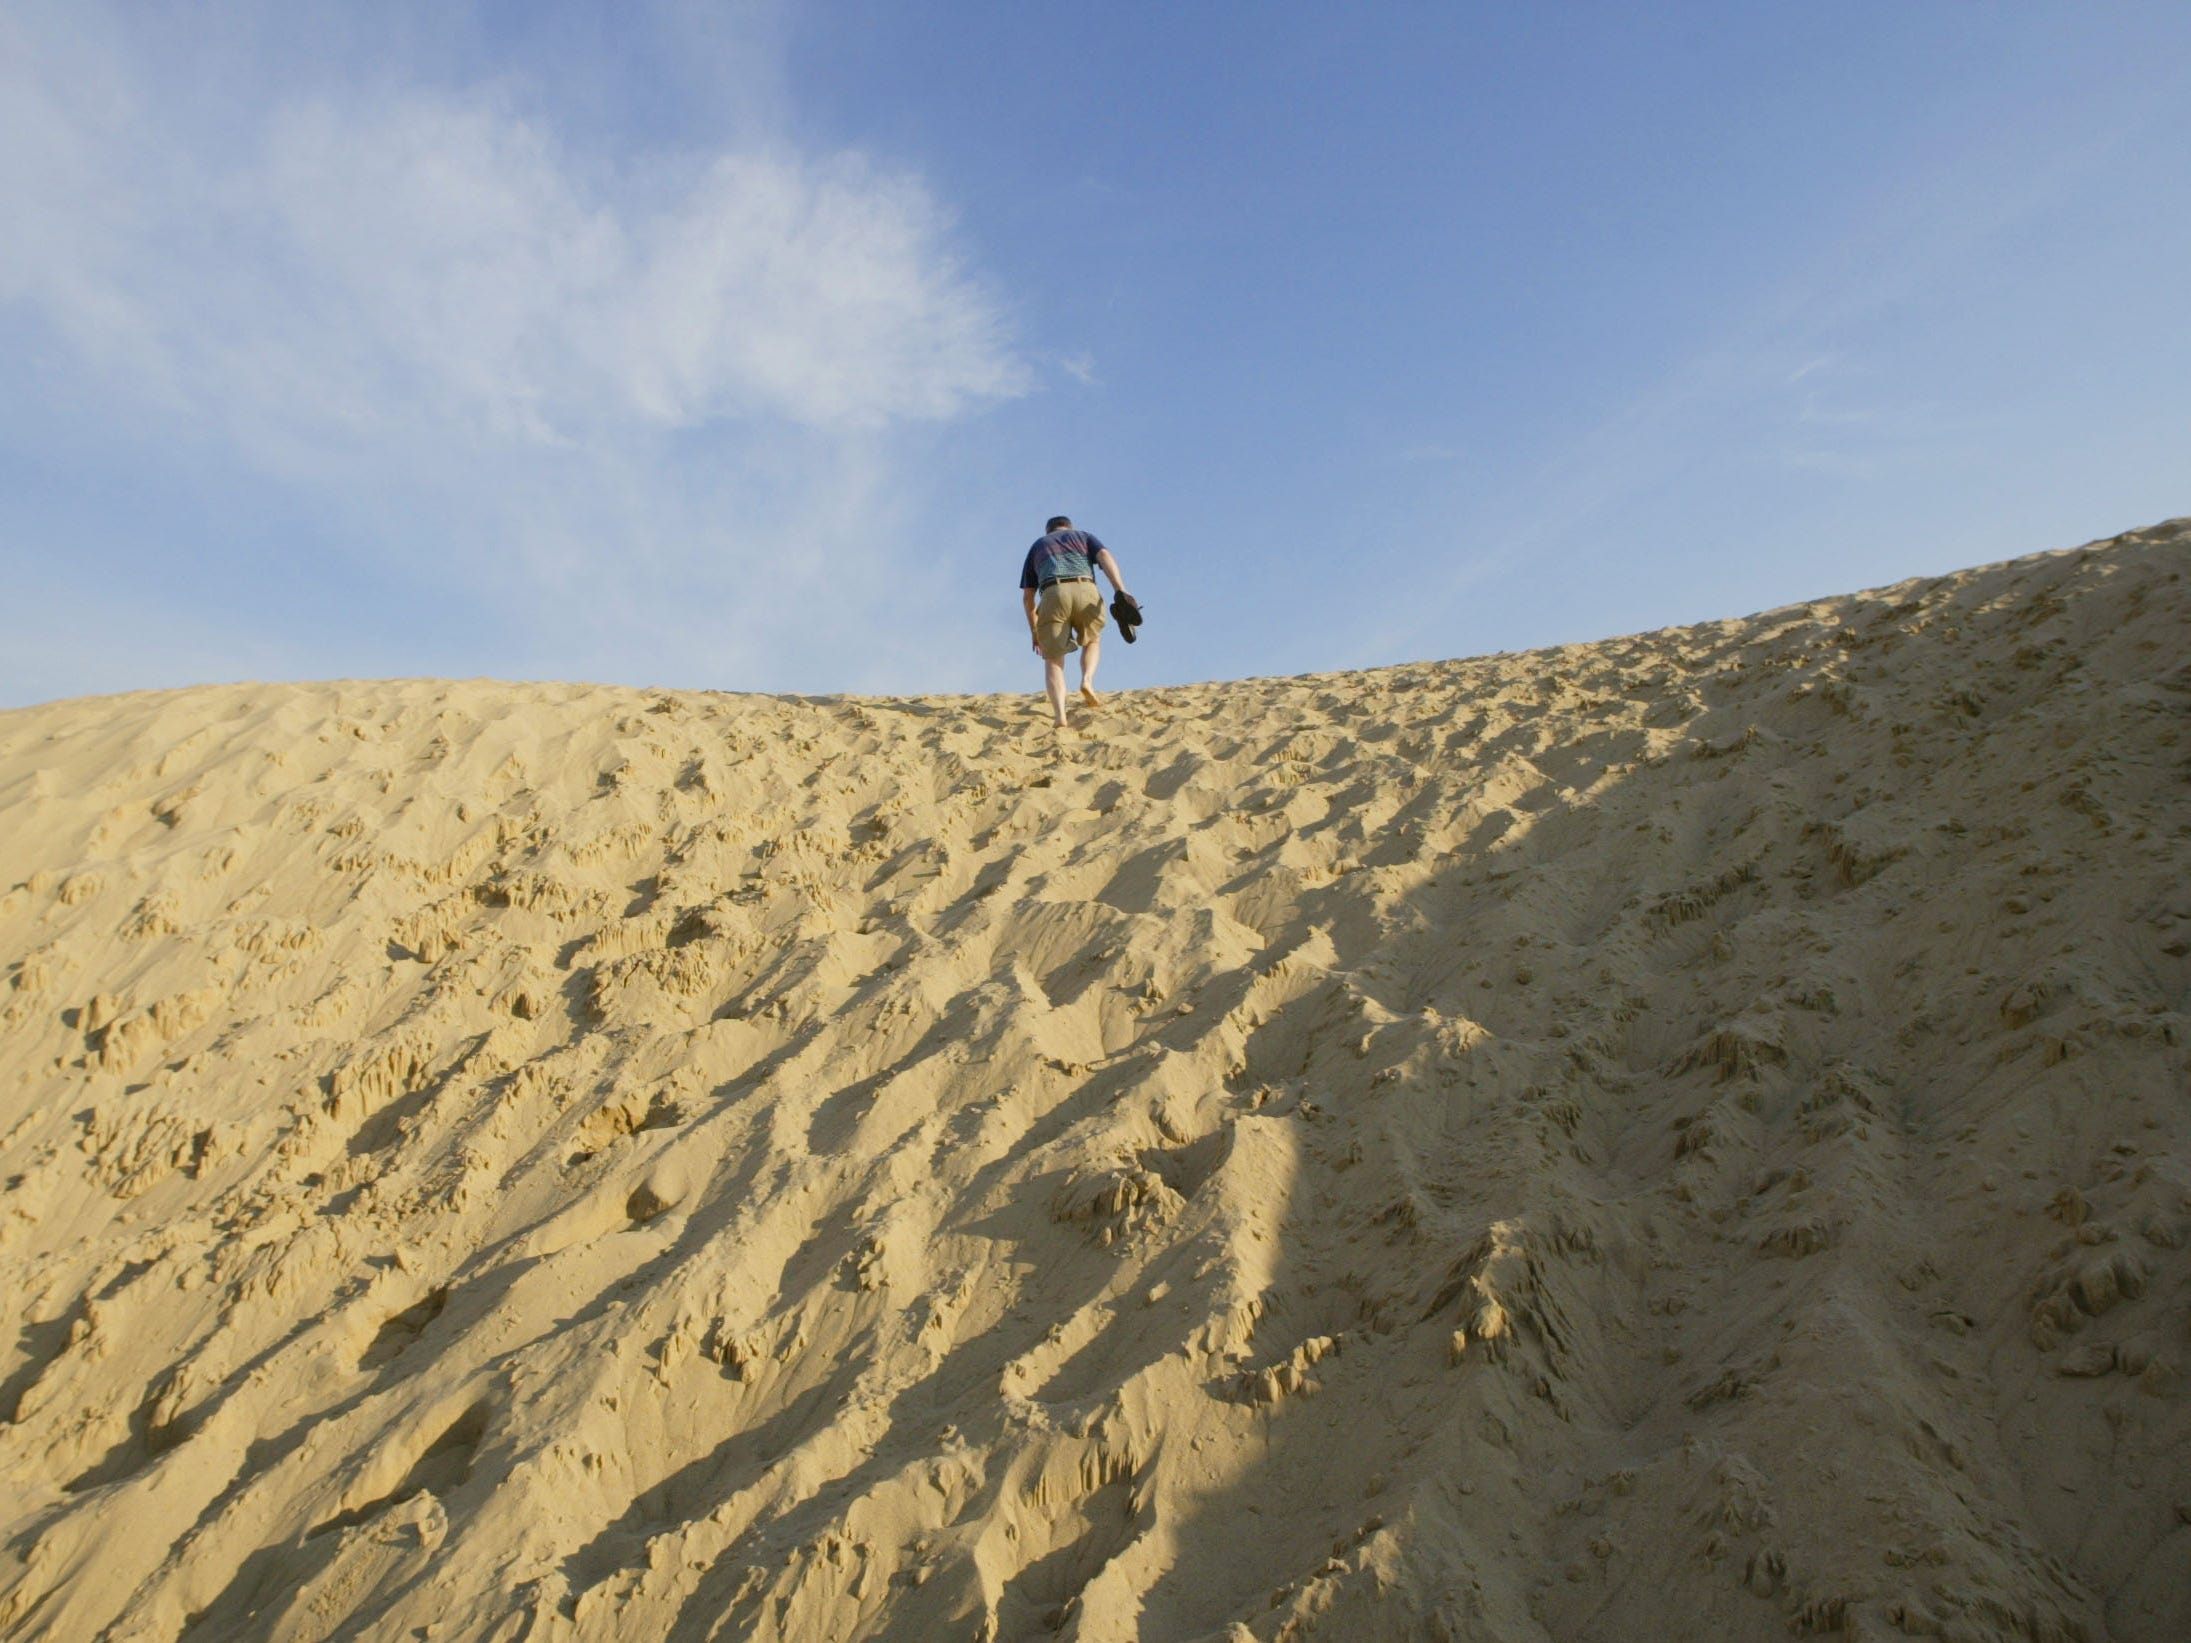 An early-morning visitor climbs to the top of Mt. Baldy at sunrise. The 125-foot-tall sand dune is the trademark of the beach near Michigan City.